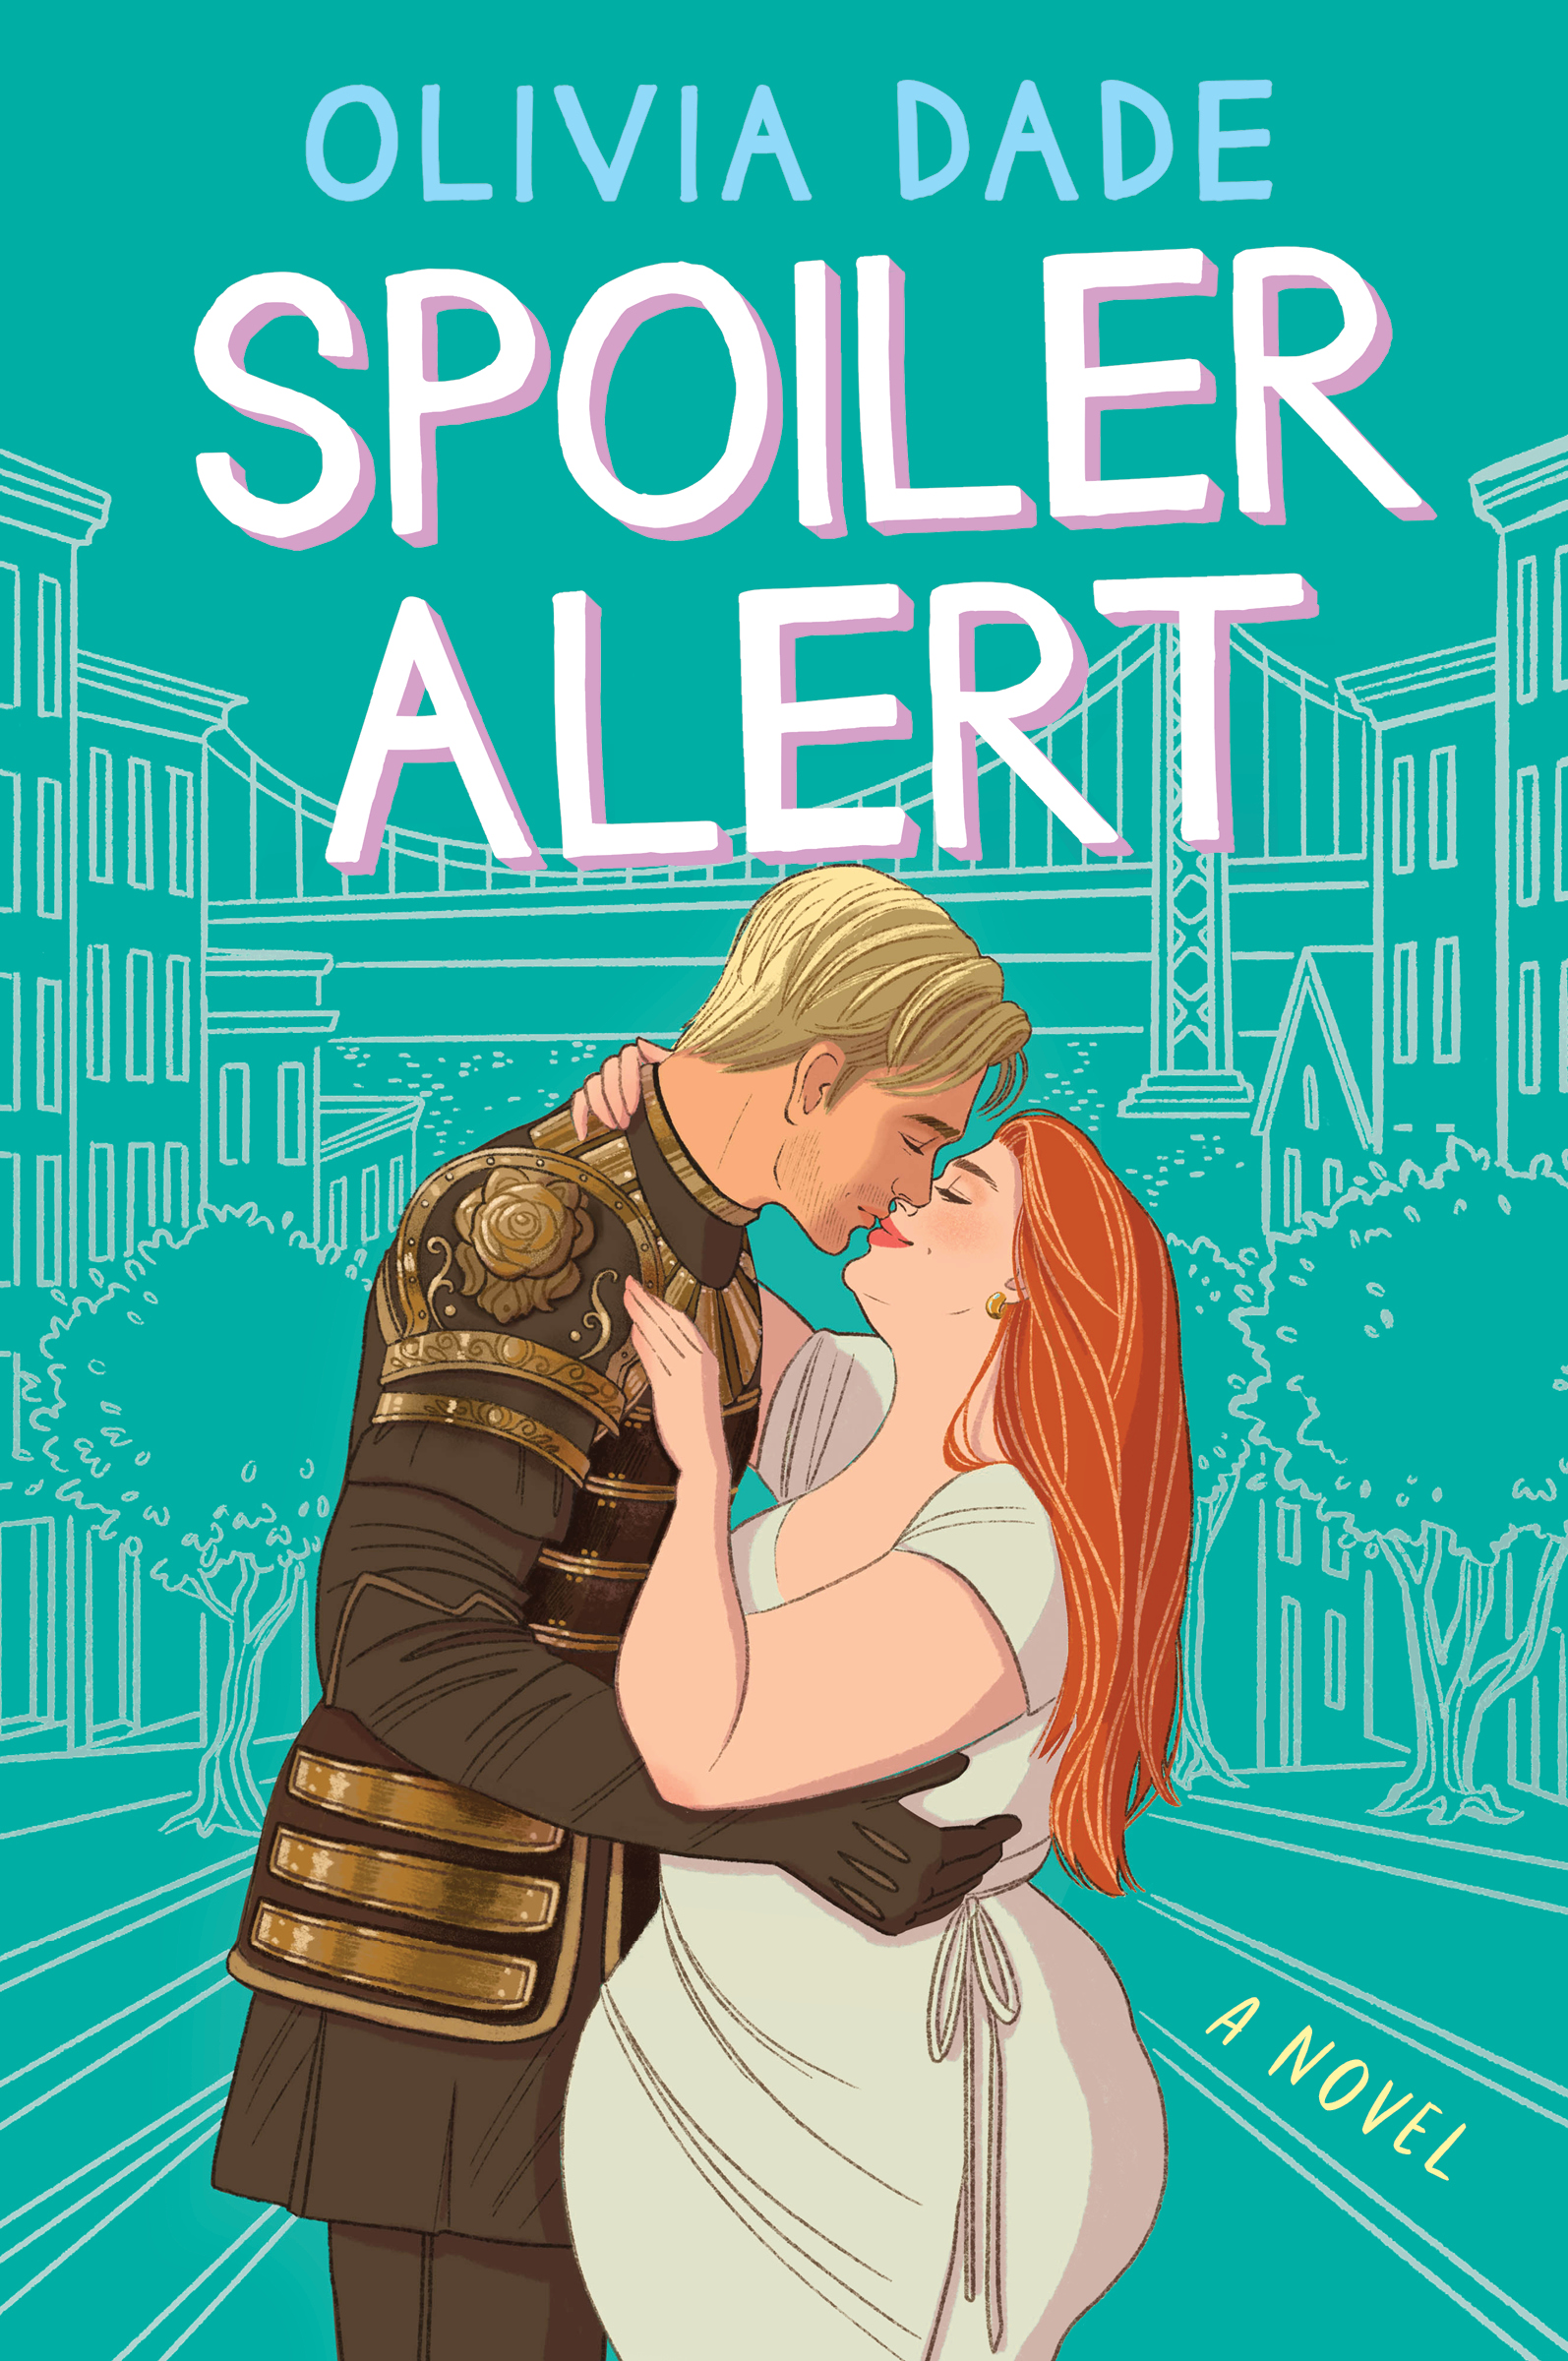 Cover of Spoiler Alert by Olivia Dade: A handsome blond man in armor is kissing a fat, beautiful, redheaded woman in front of a backdrop of San Francisco and the Golden Gate Bridge.